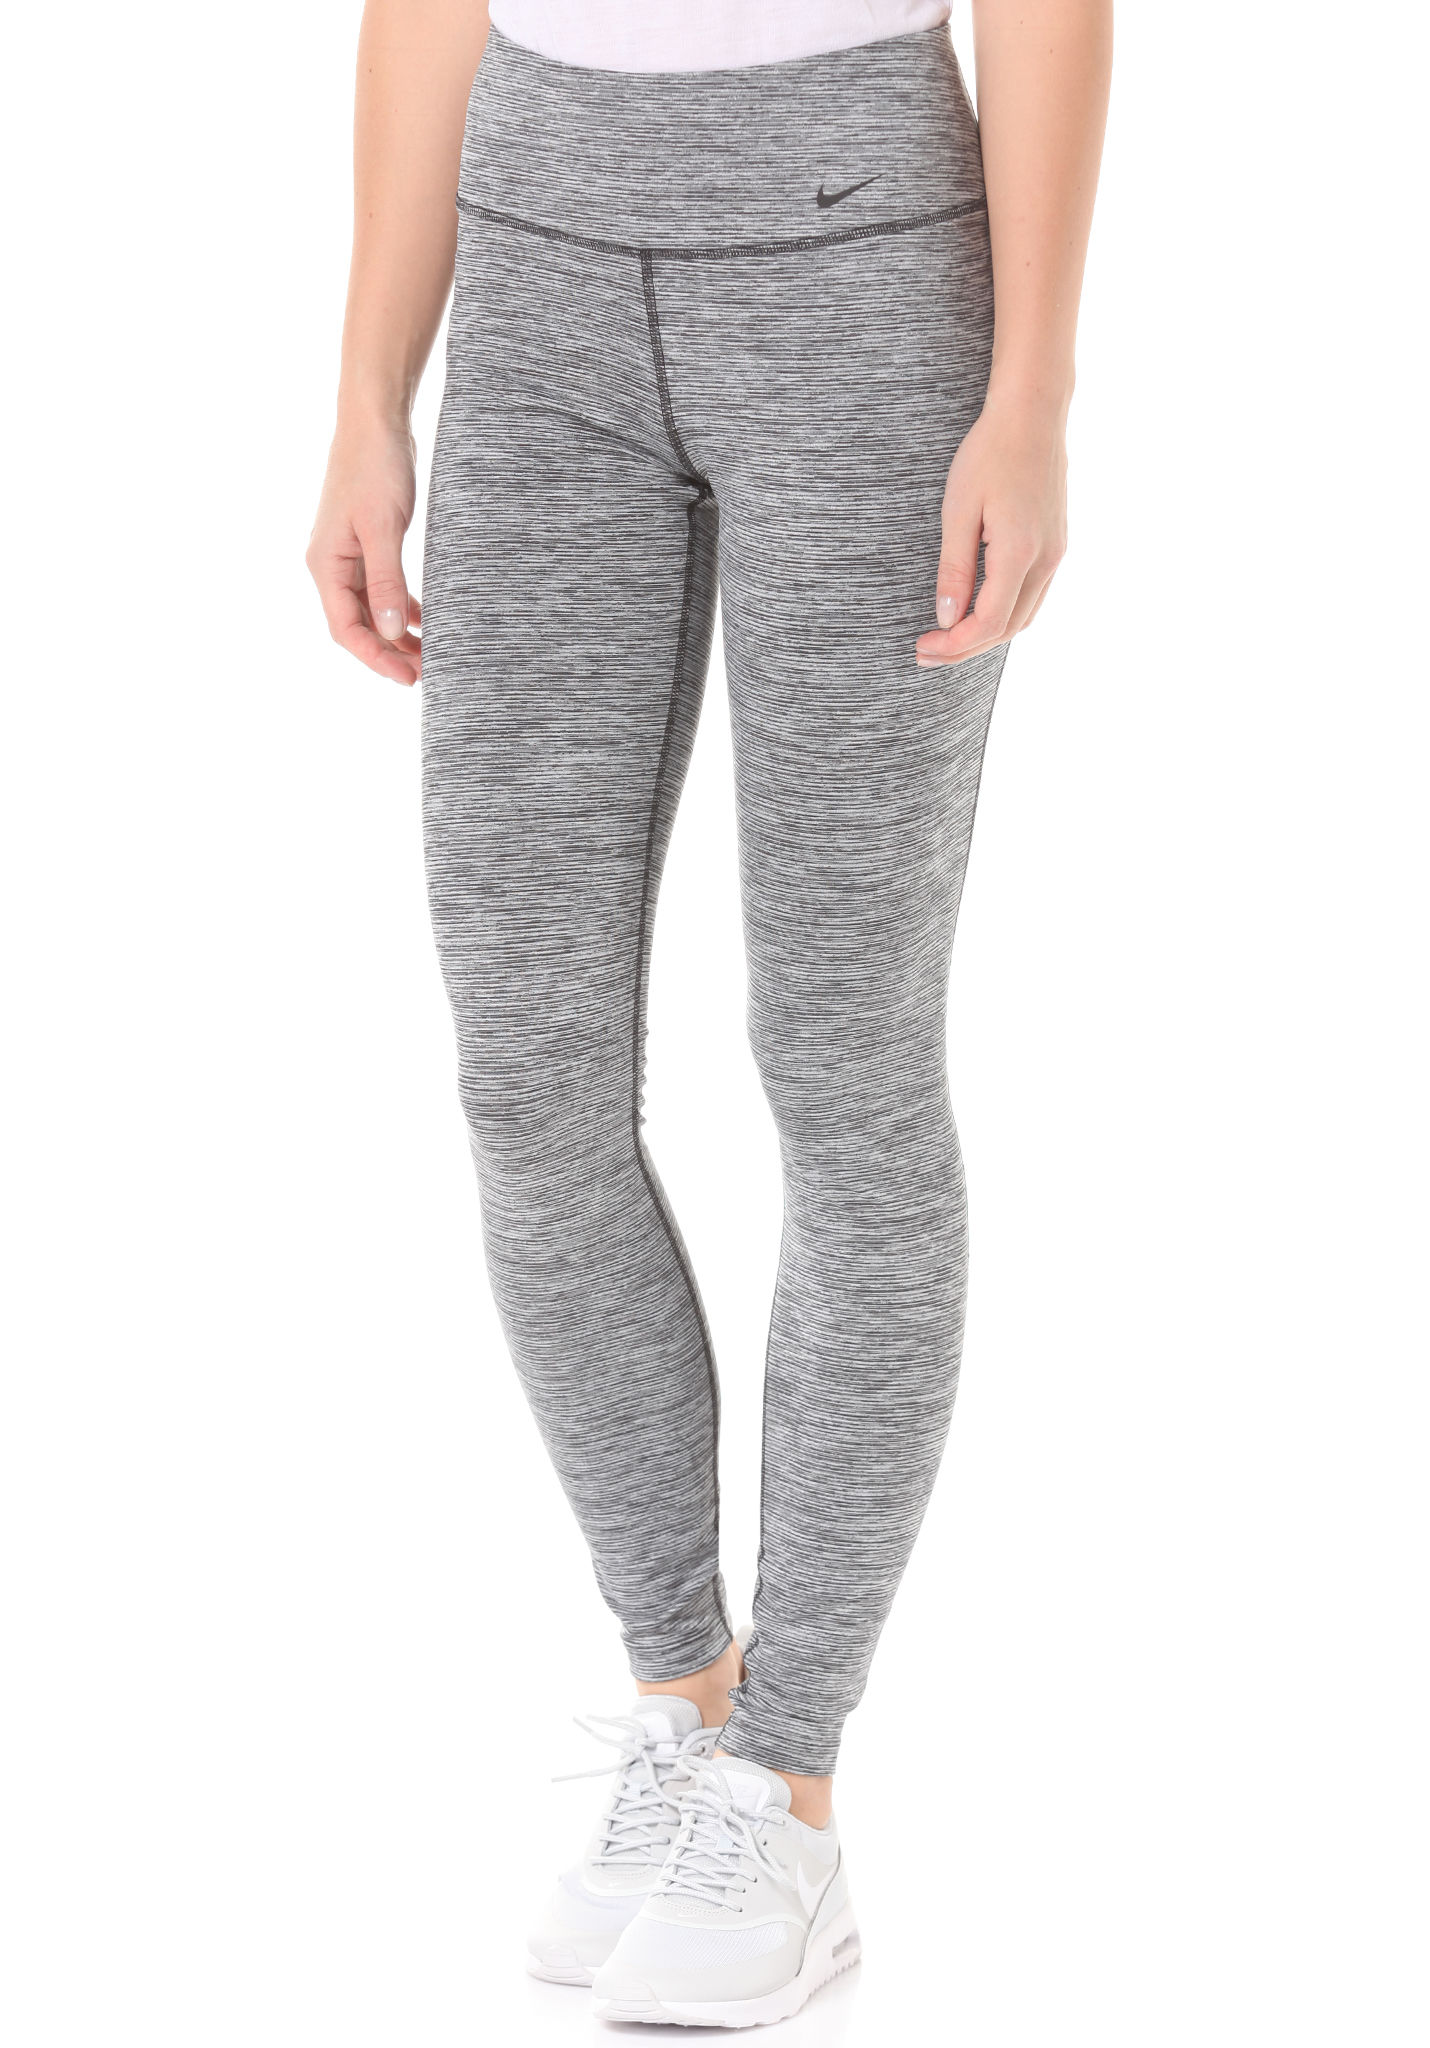 legging sport nike gris. Black Bedroom Furniture Sets. Home Design Ideas